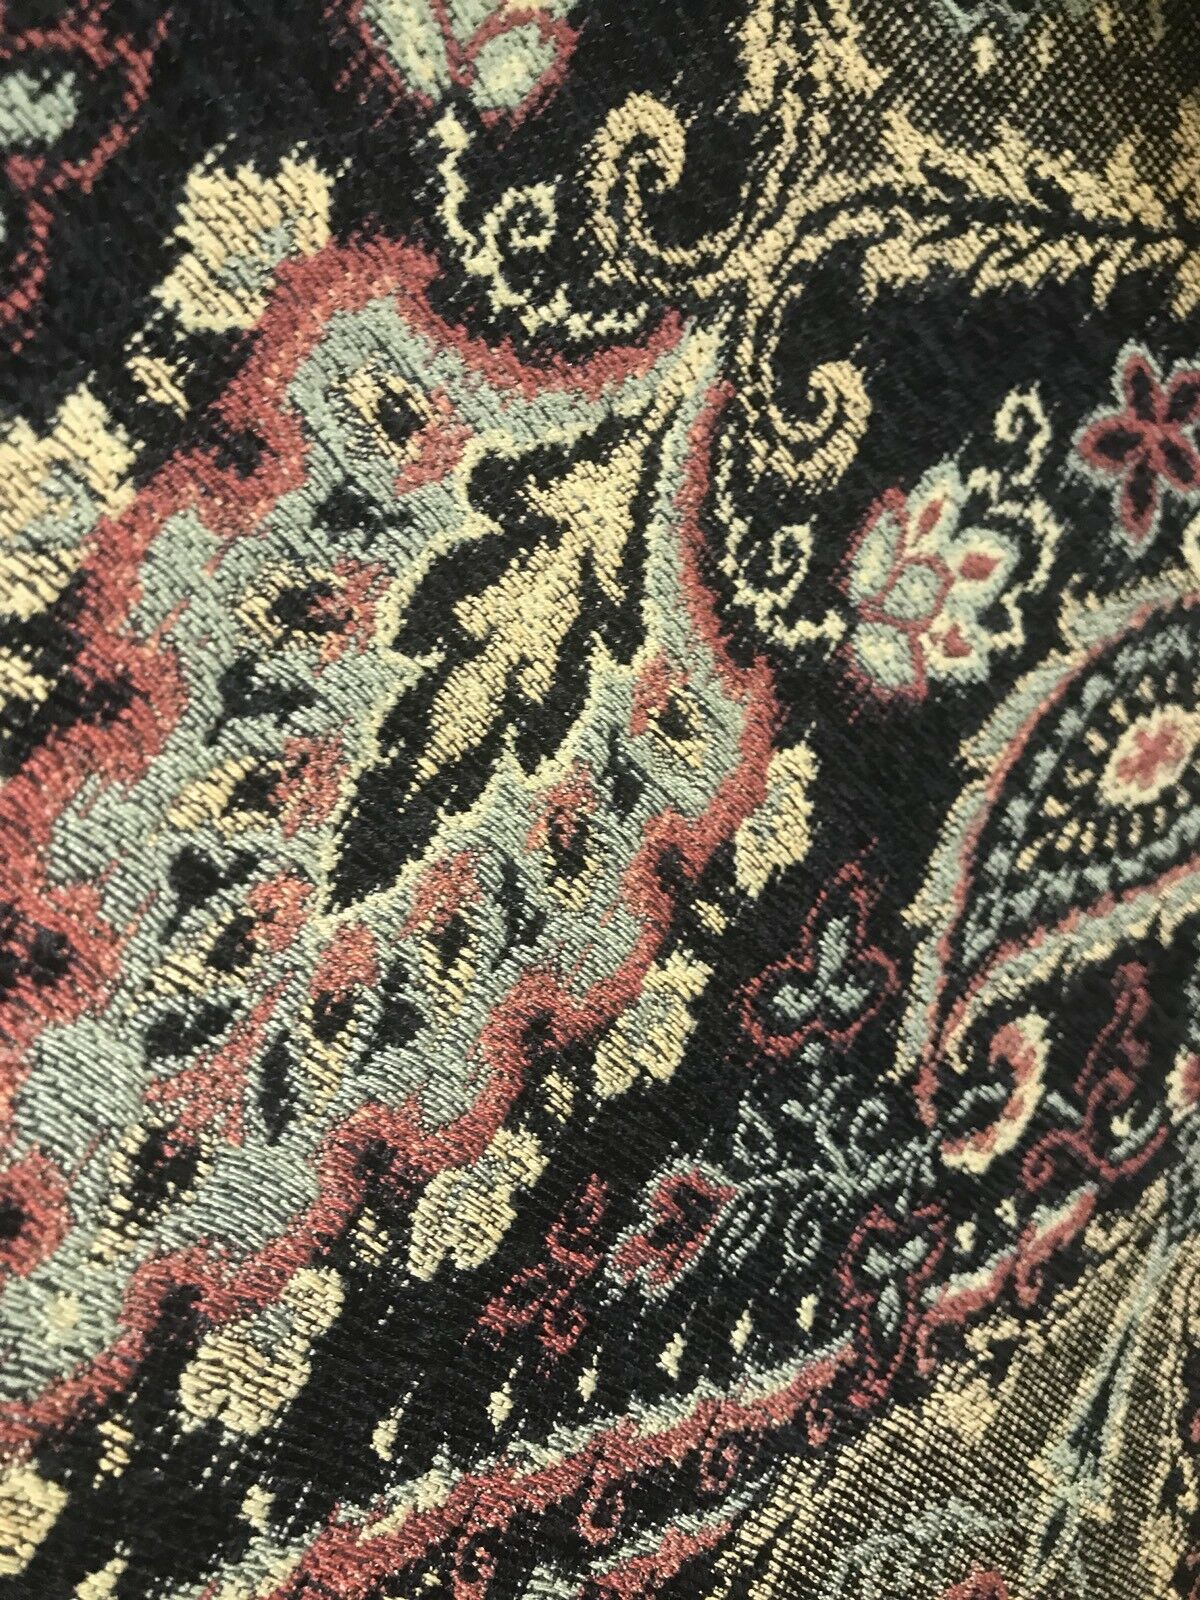 SWATCH Designer Velvet Chenille Burnout Fabric - Black With Muted Multi Colors